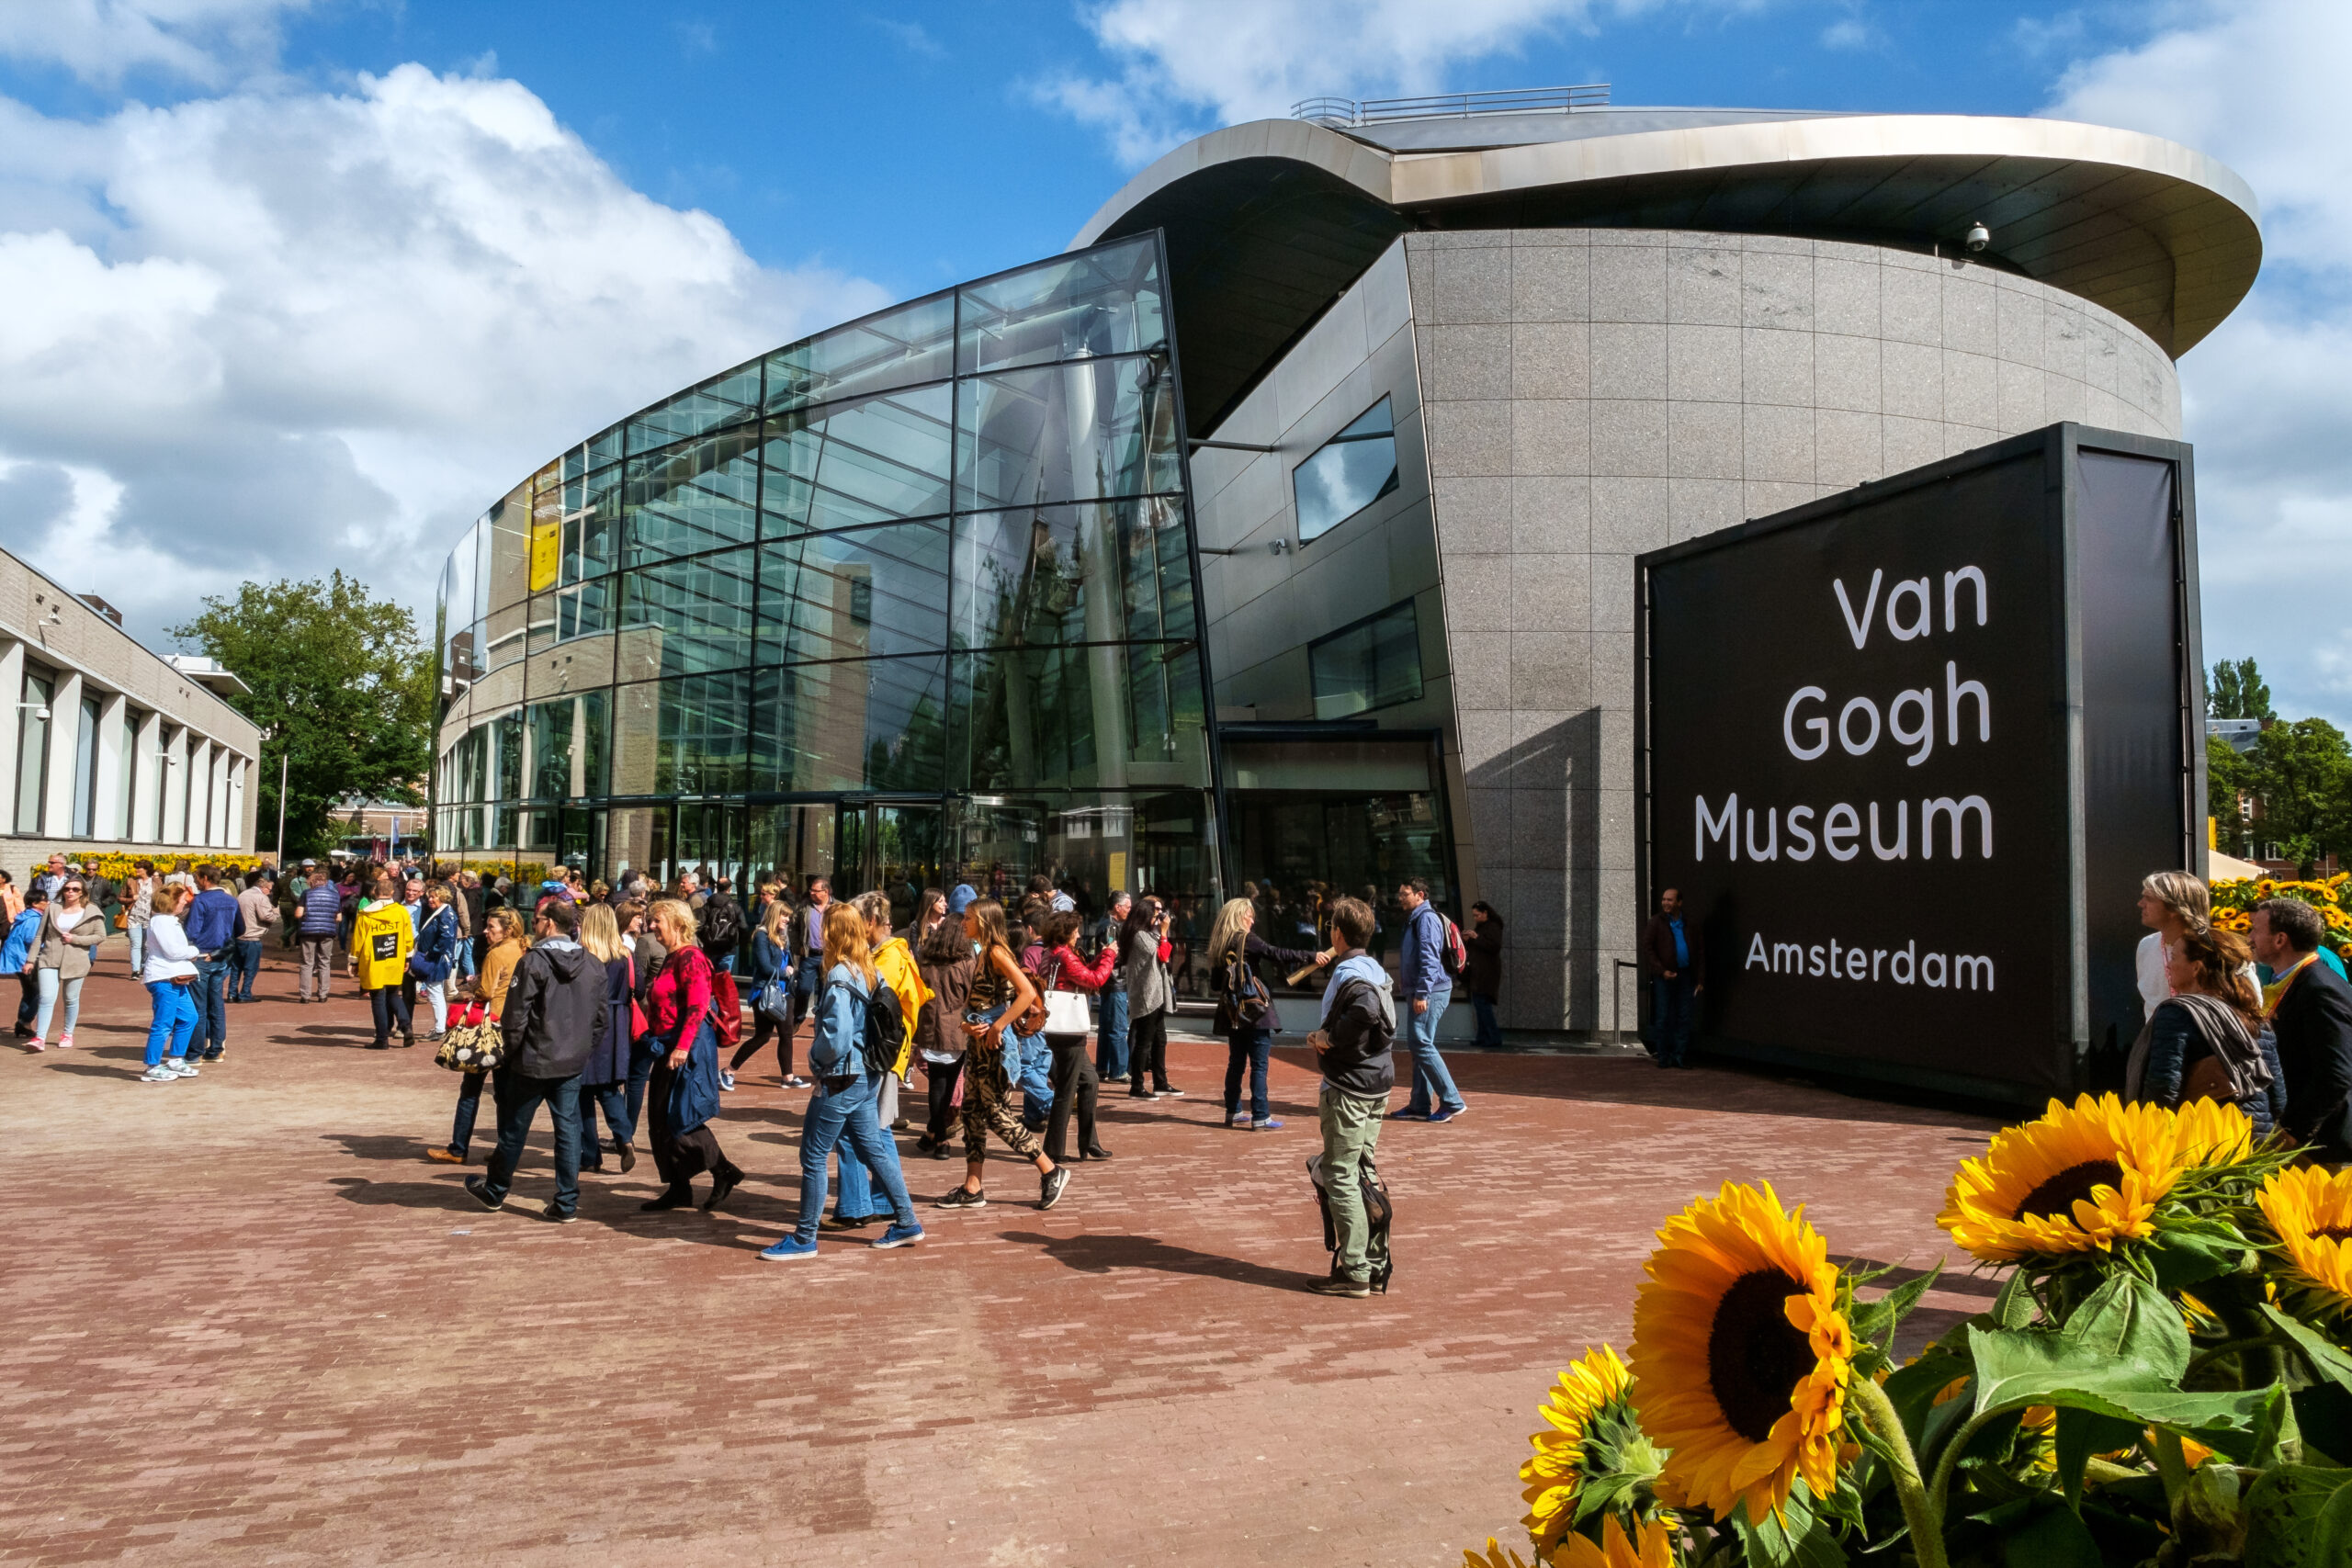 Crowd in front of the new wing of the Van Gogh Museum with sunflowers in the foreground.